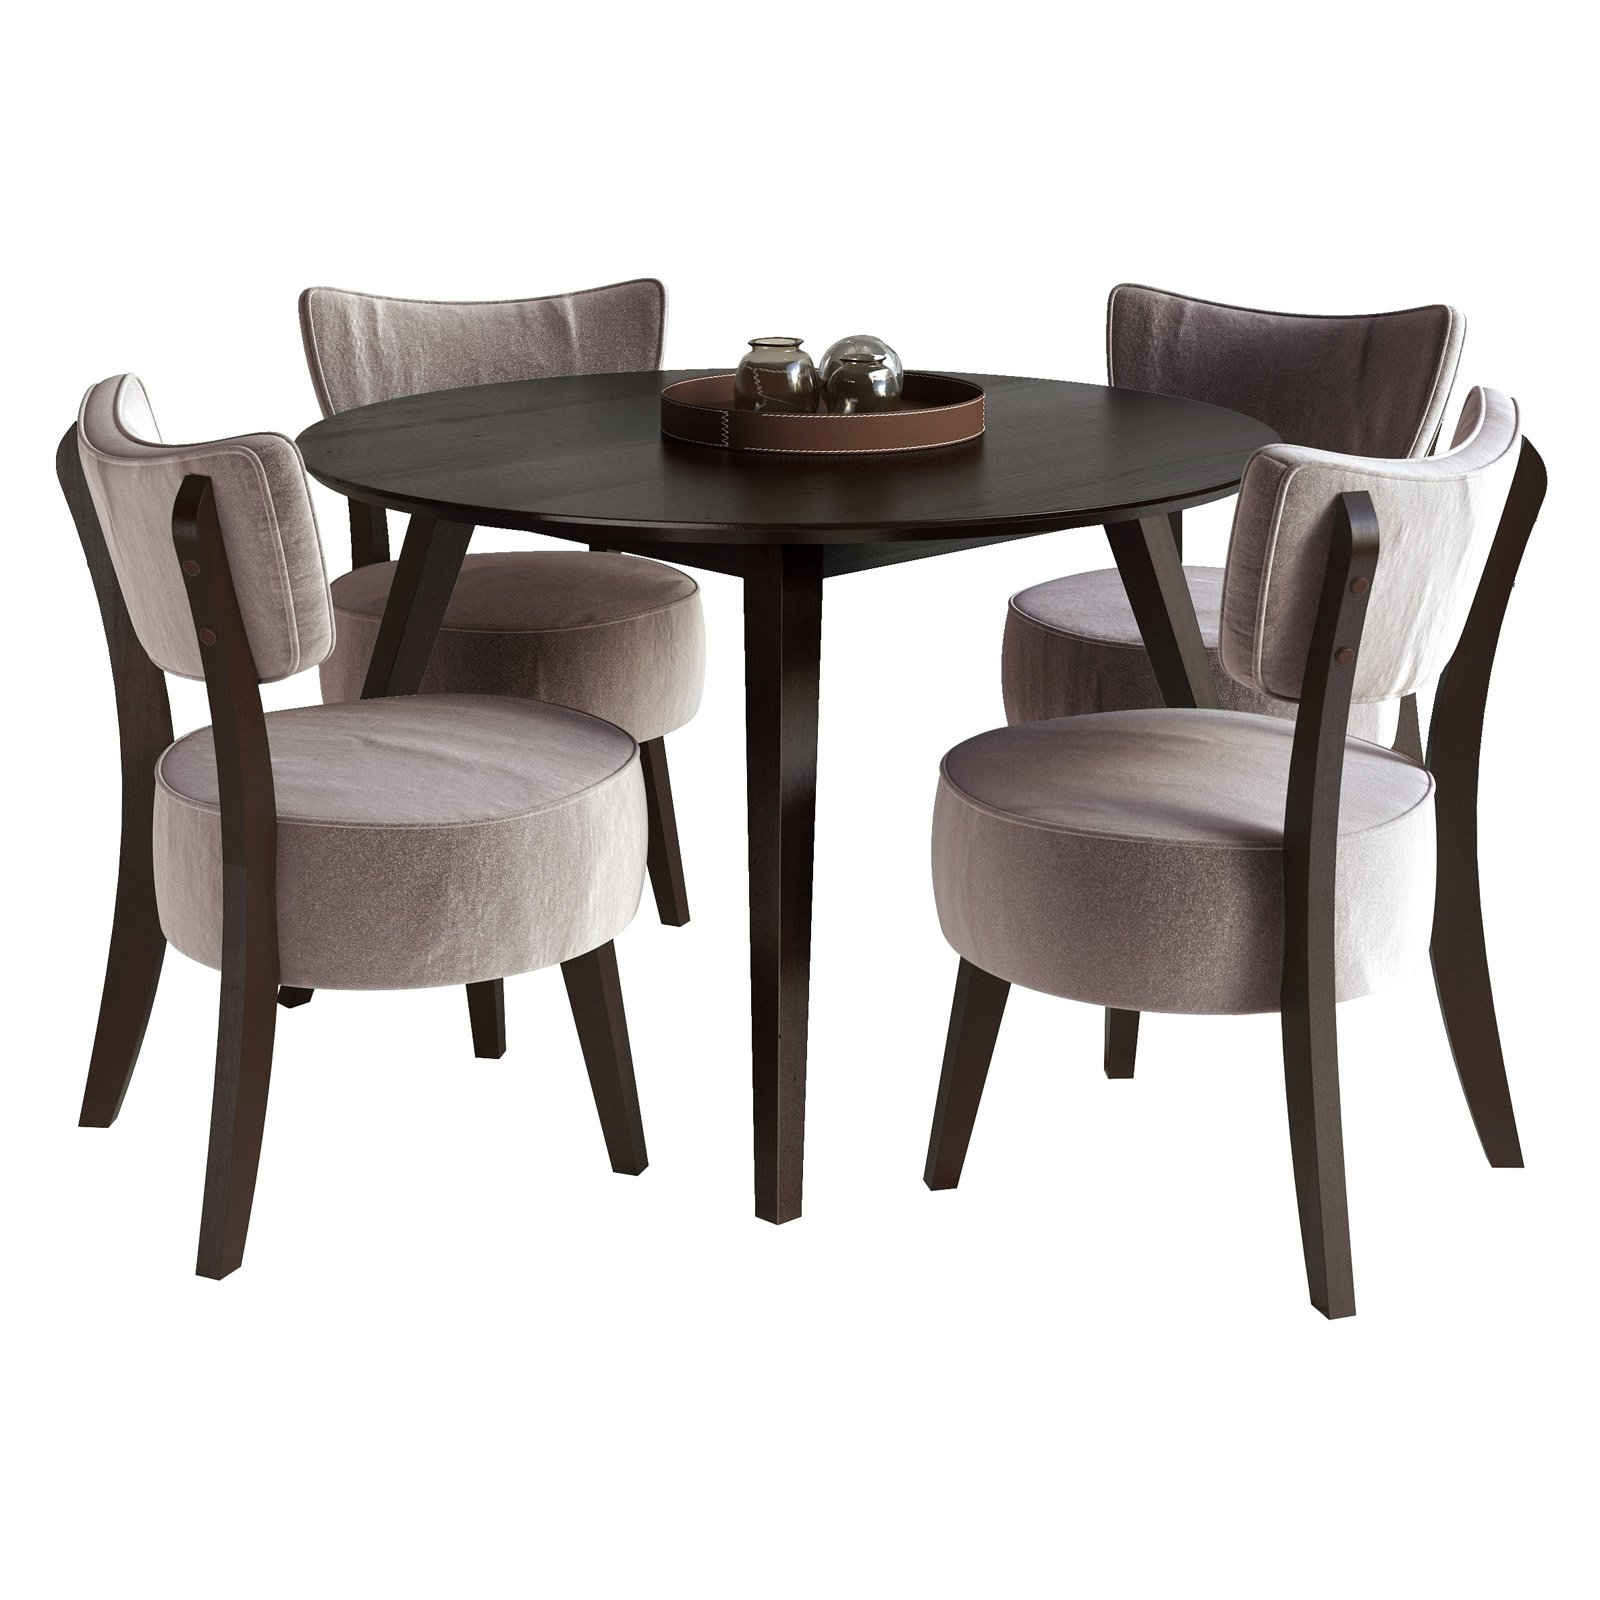 CorLiving Atwood 5-Piece Dining Set, Soft Grey Velvet Chairs